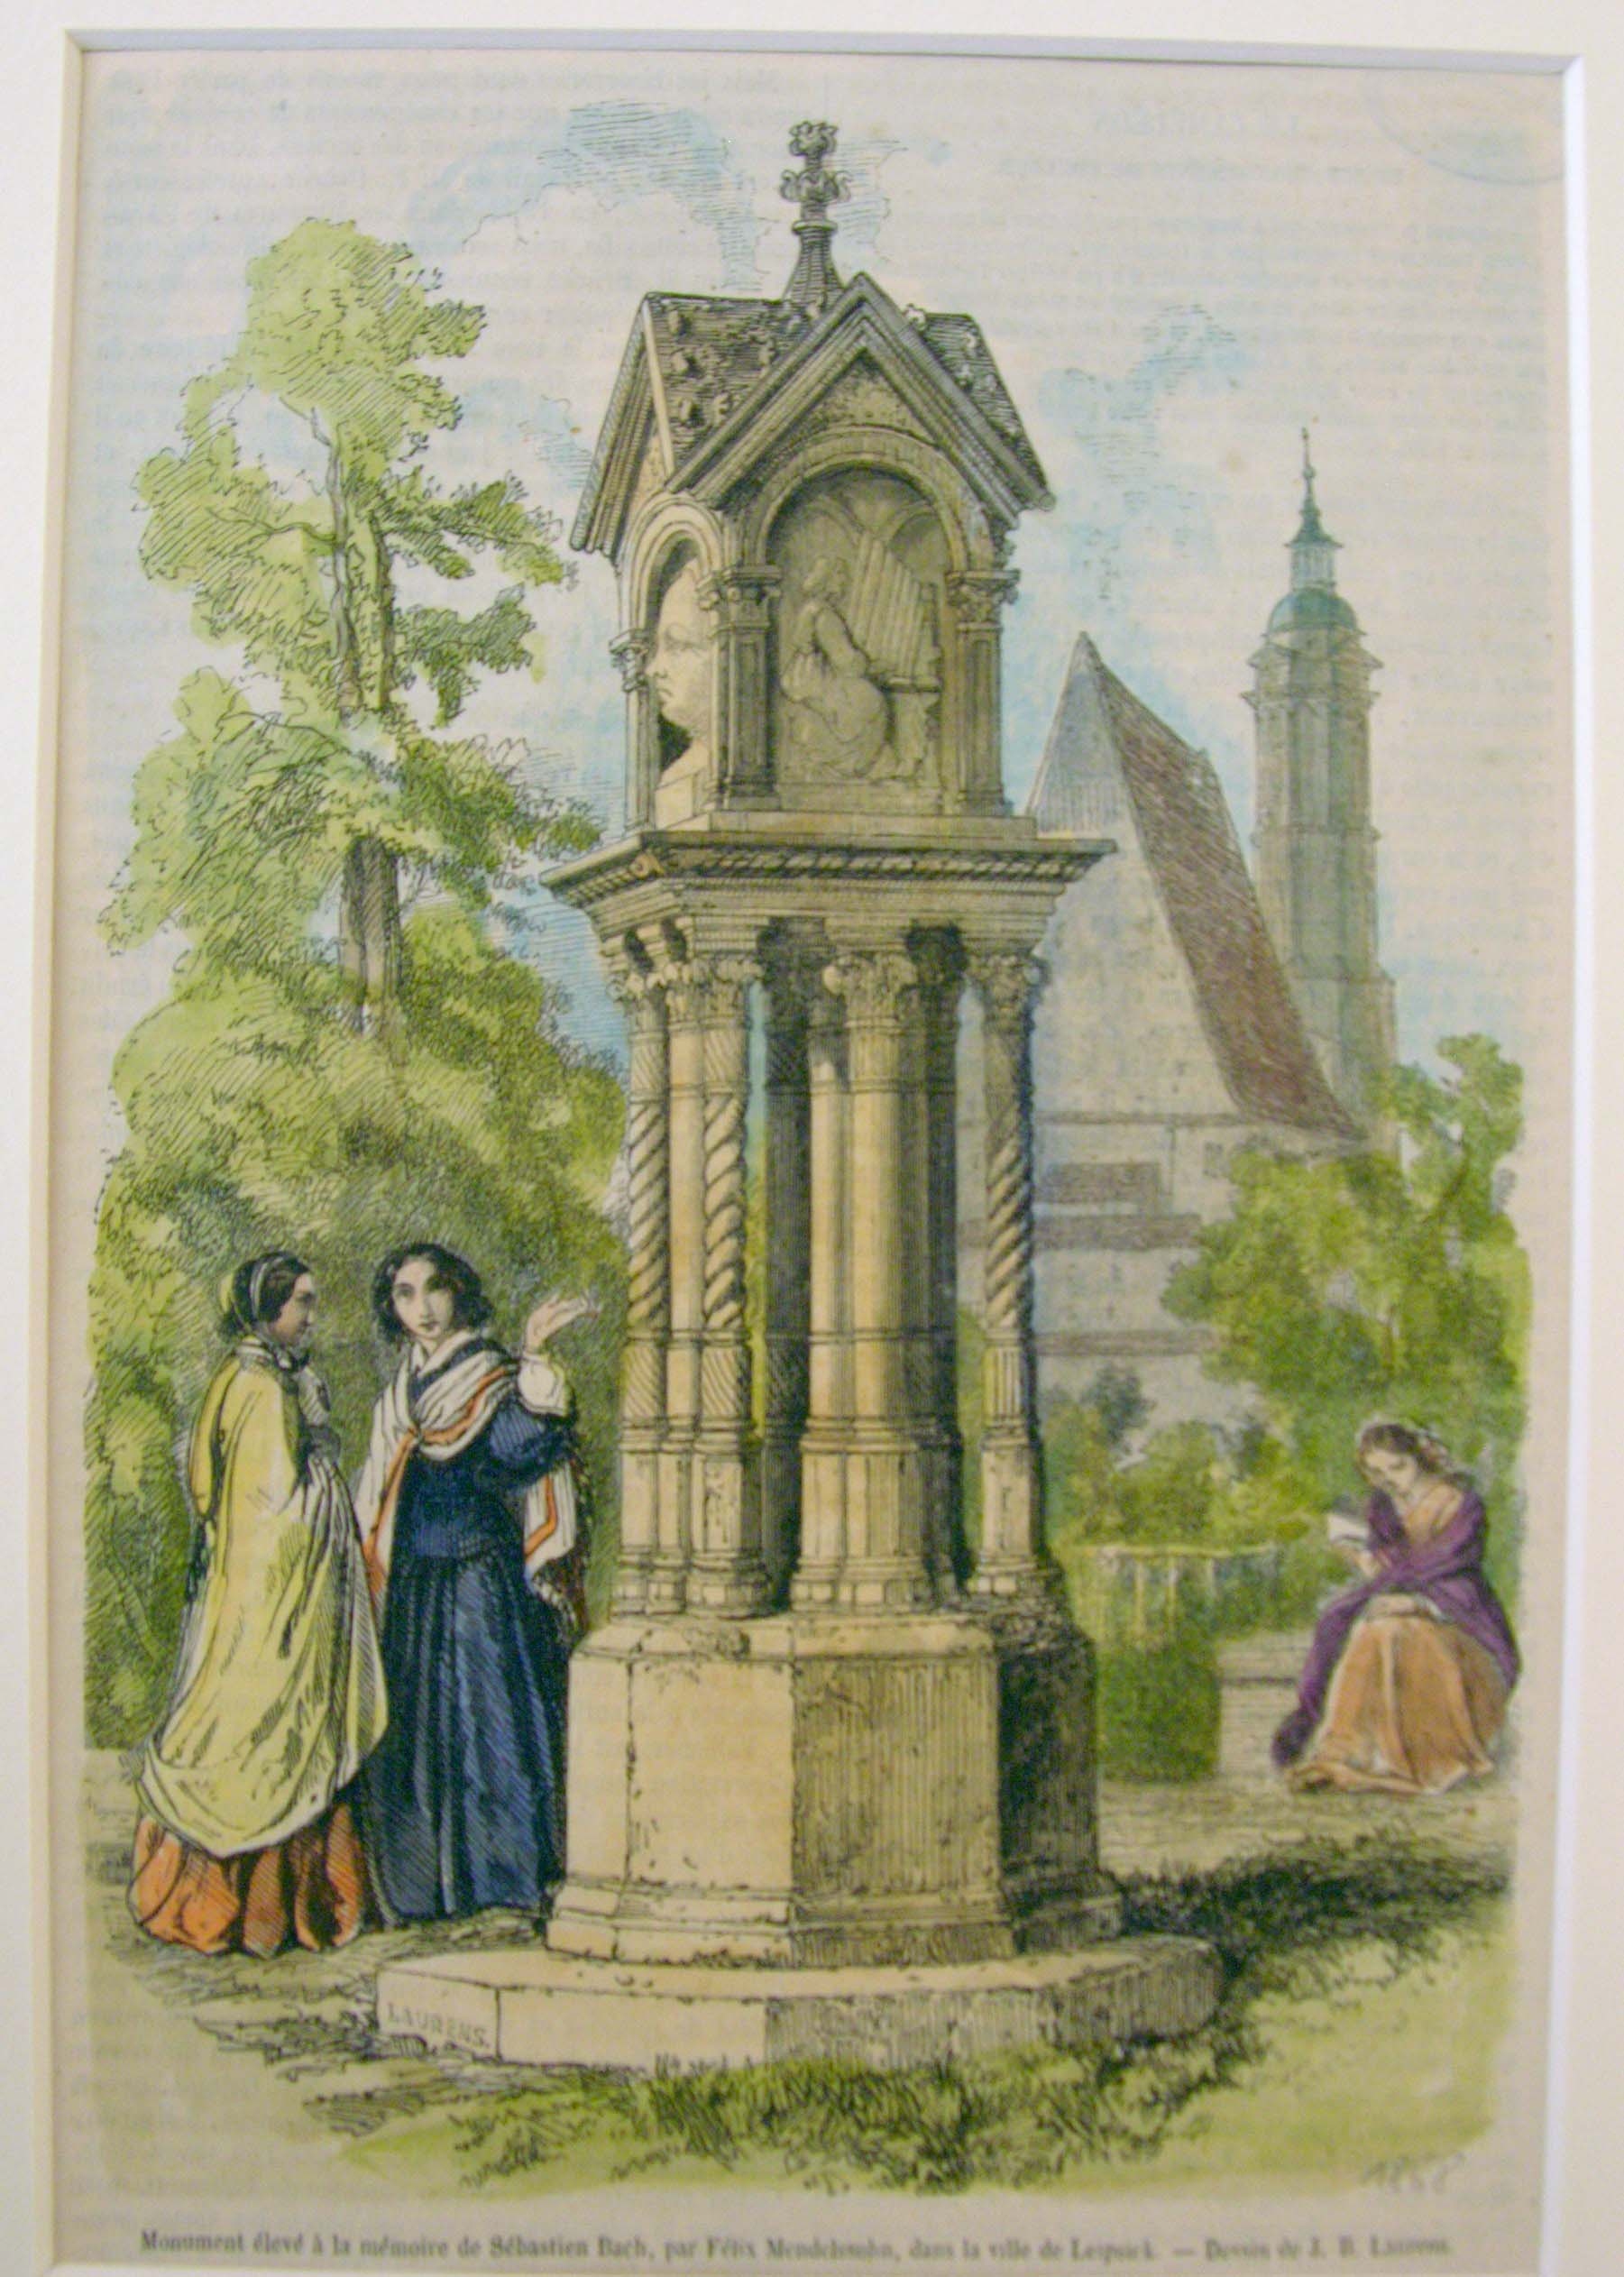 Woodcarving print based on an aquarel by Eduard Bendemann (1850) of the monument for Bach in Leipzig, erected by Felix Mendelssohn in 1843. It may very well be the only example of a monument erected by a composer to honour another.